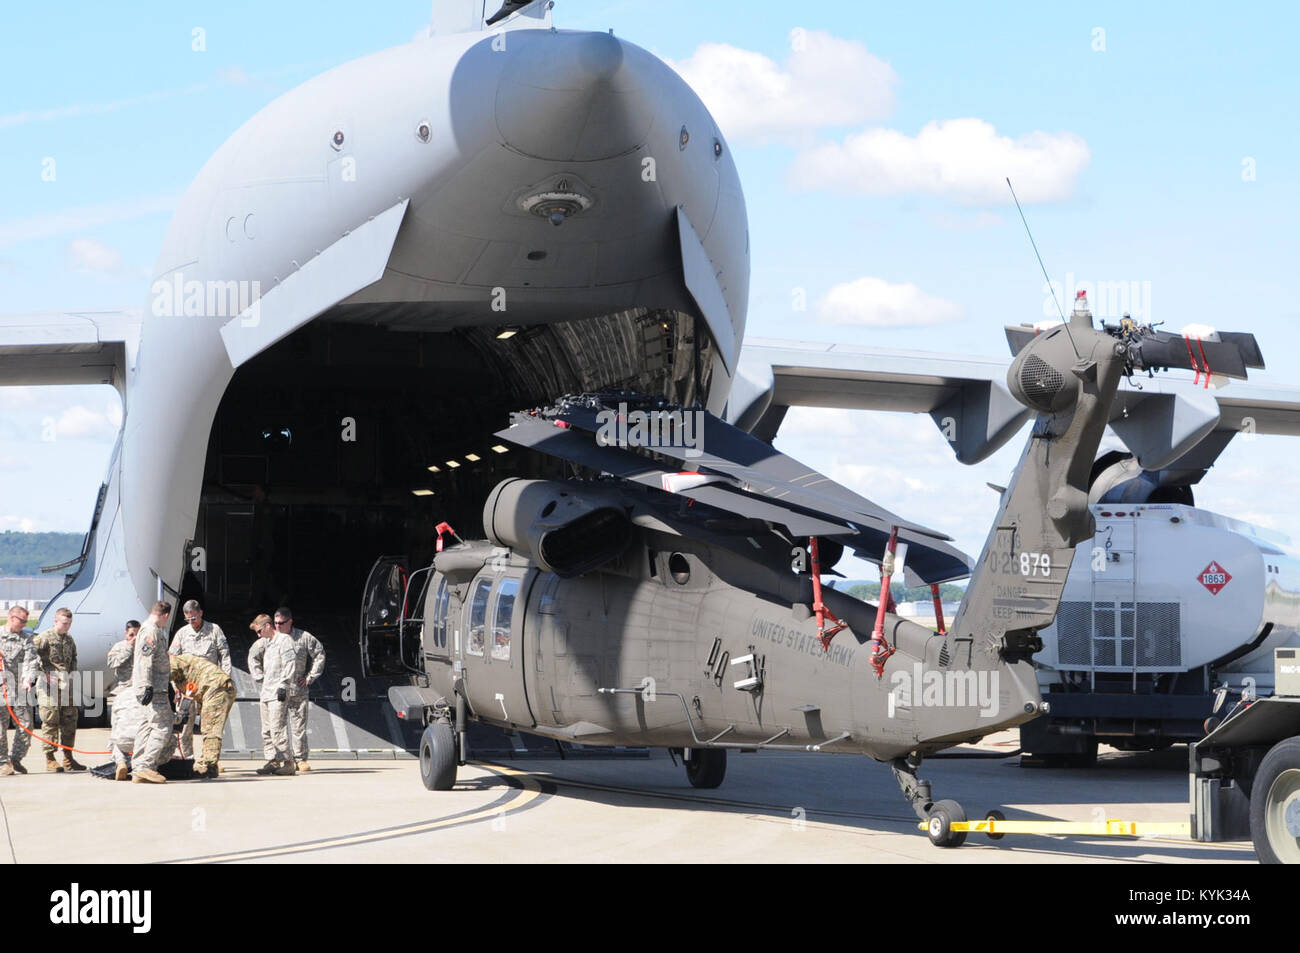 Soldiers of the Kentucky Army National Guard's 63rd Theater Aviation Brigade's UH-60 Blackhawk into the hull of - Stock Image